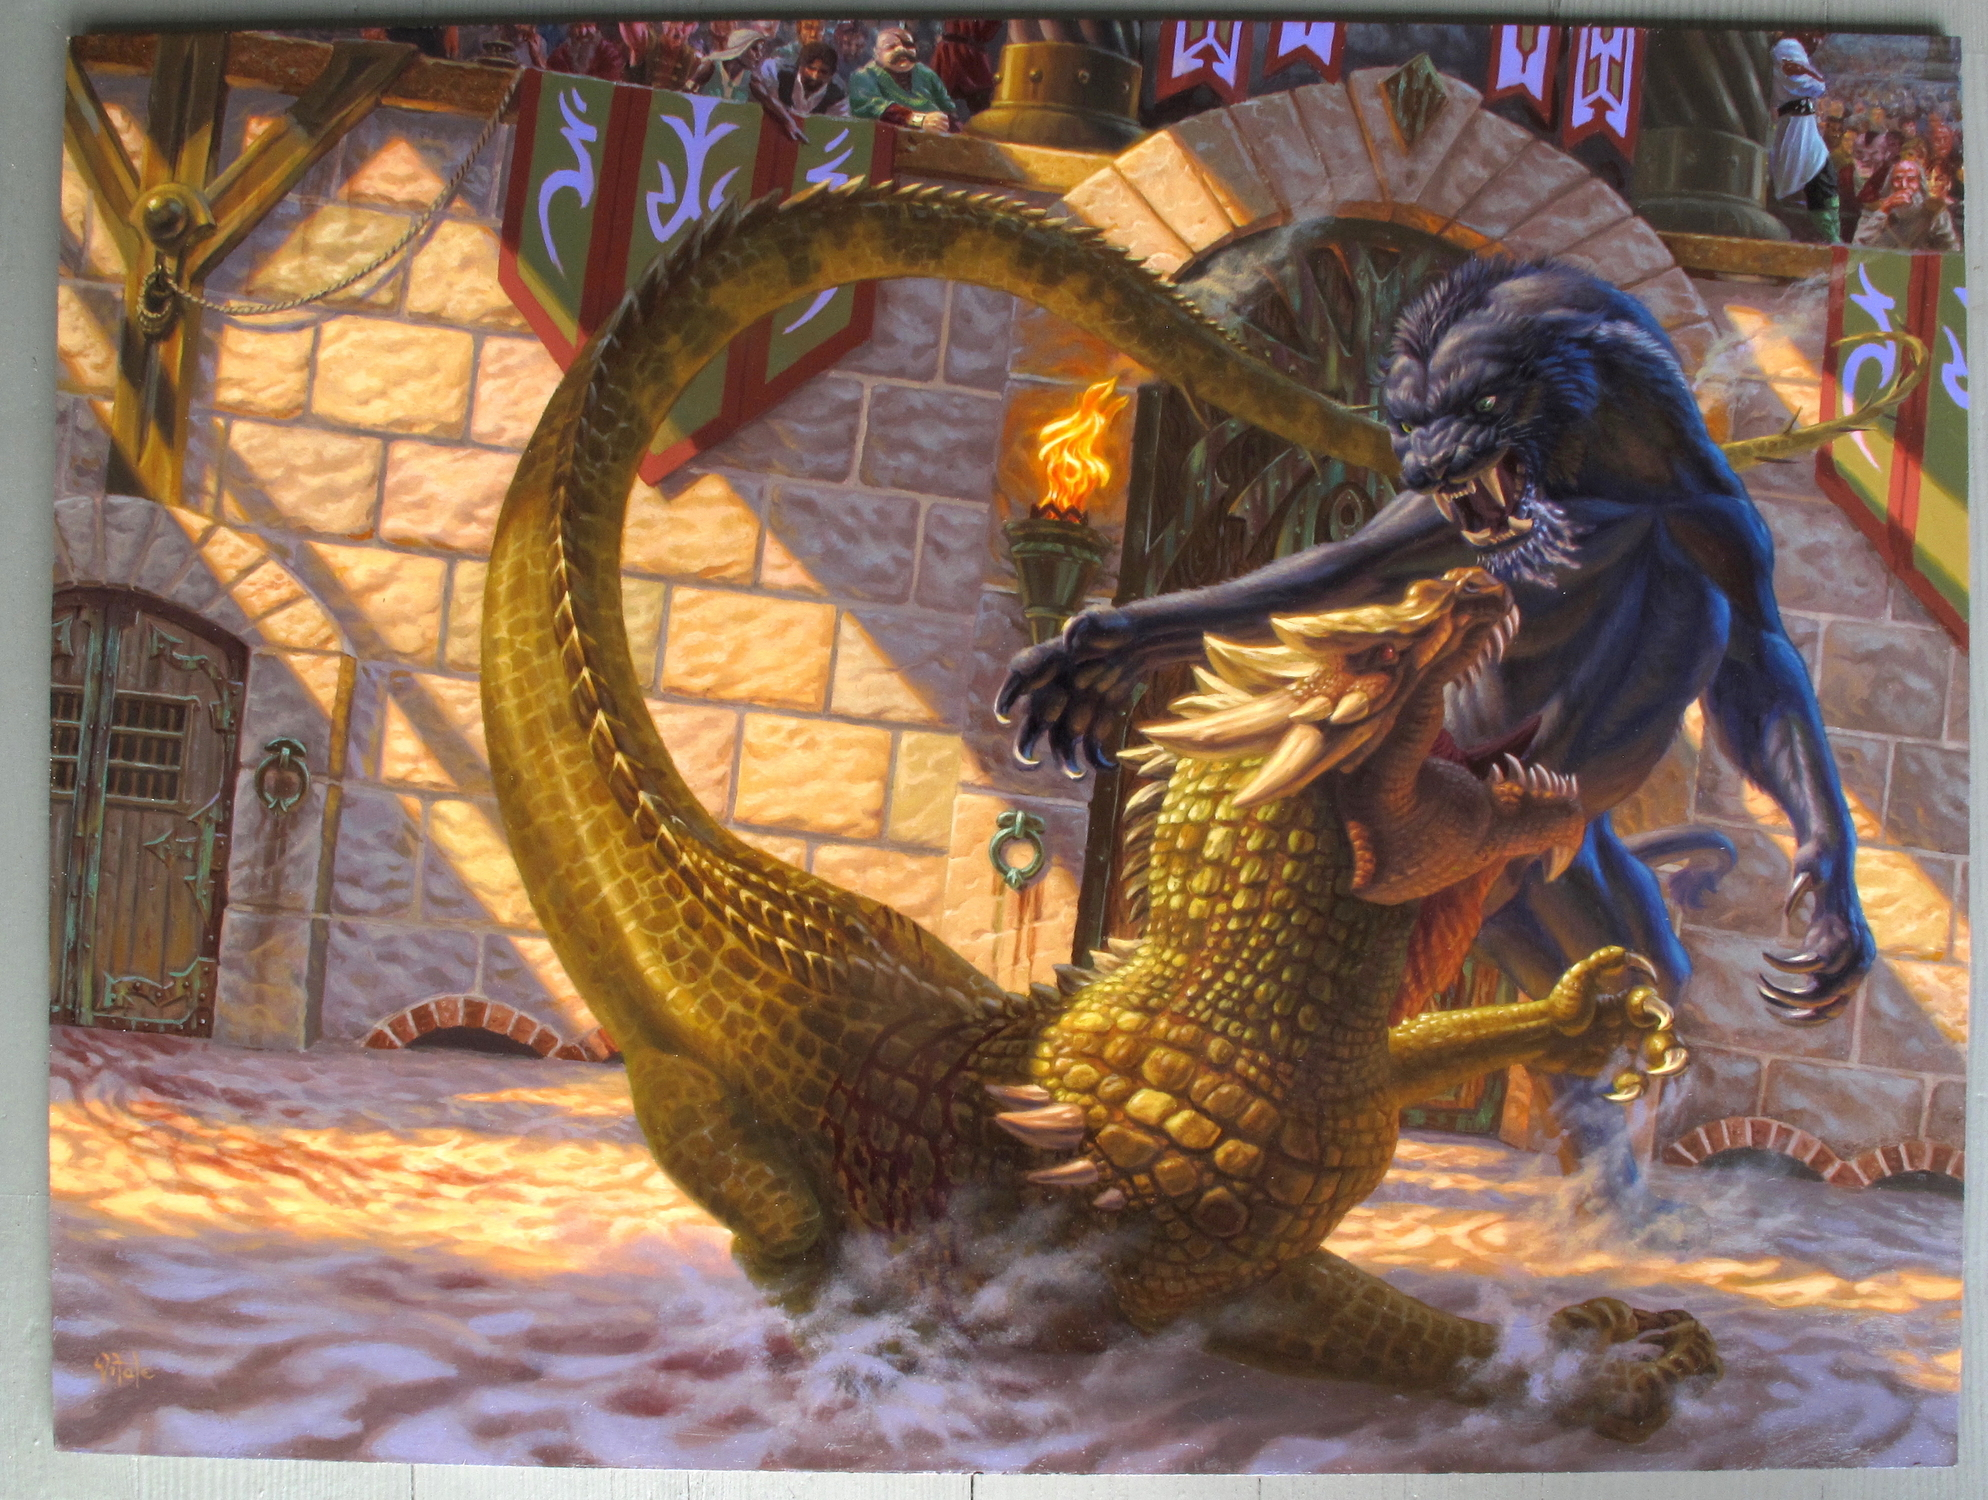 A Beast for Norn Artwork by raoul vitale